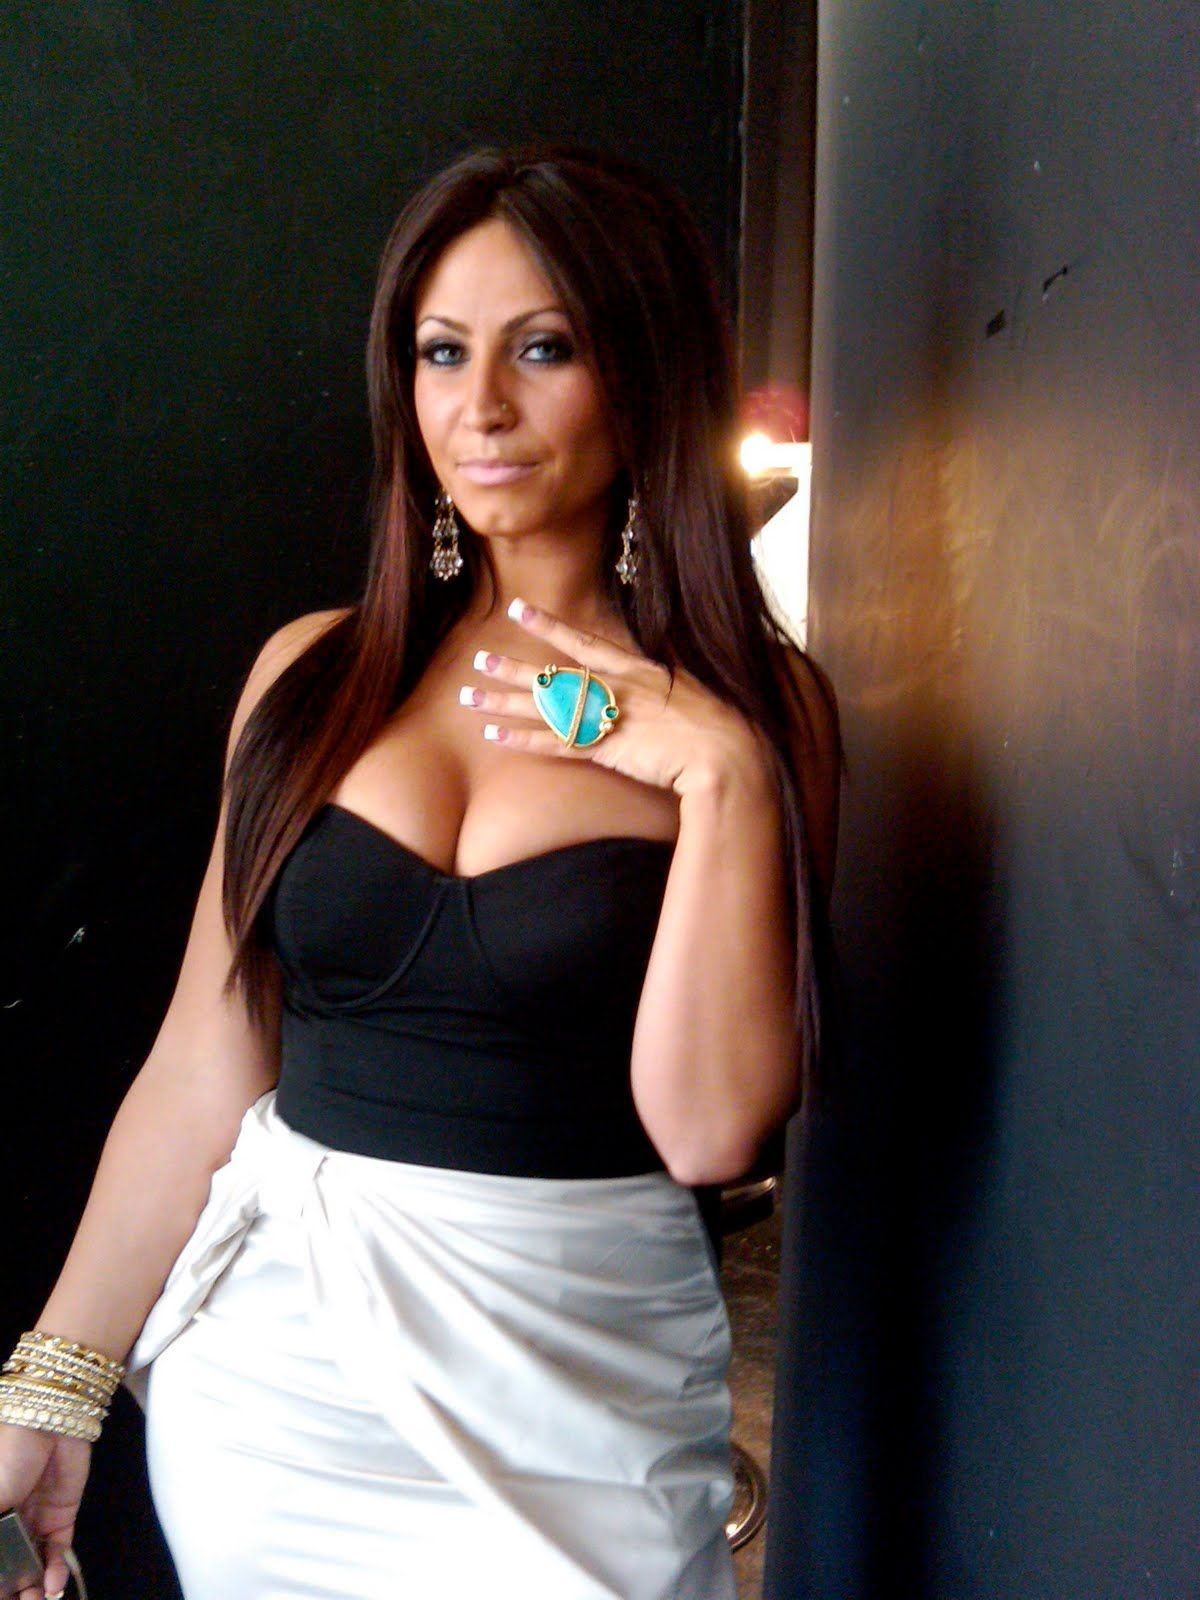 Photos Tracy Dimarco nudes (81 foto and video), Topless, Hot, Selfie, swimsuit 2006